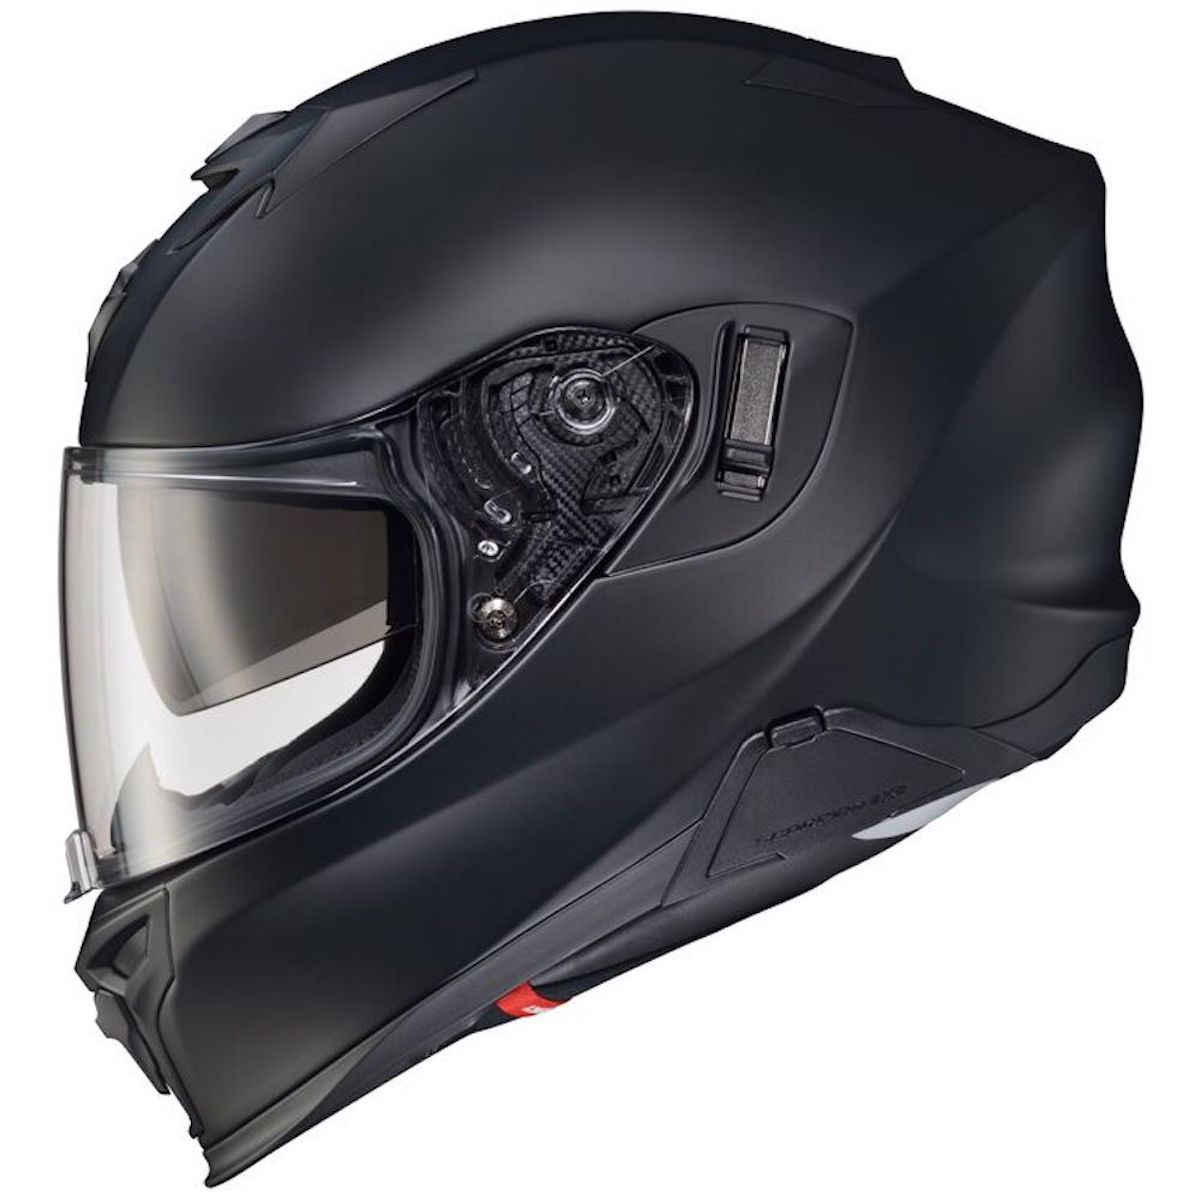 A view of a Scorpion EXO-T520 helmet